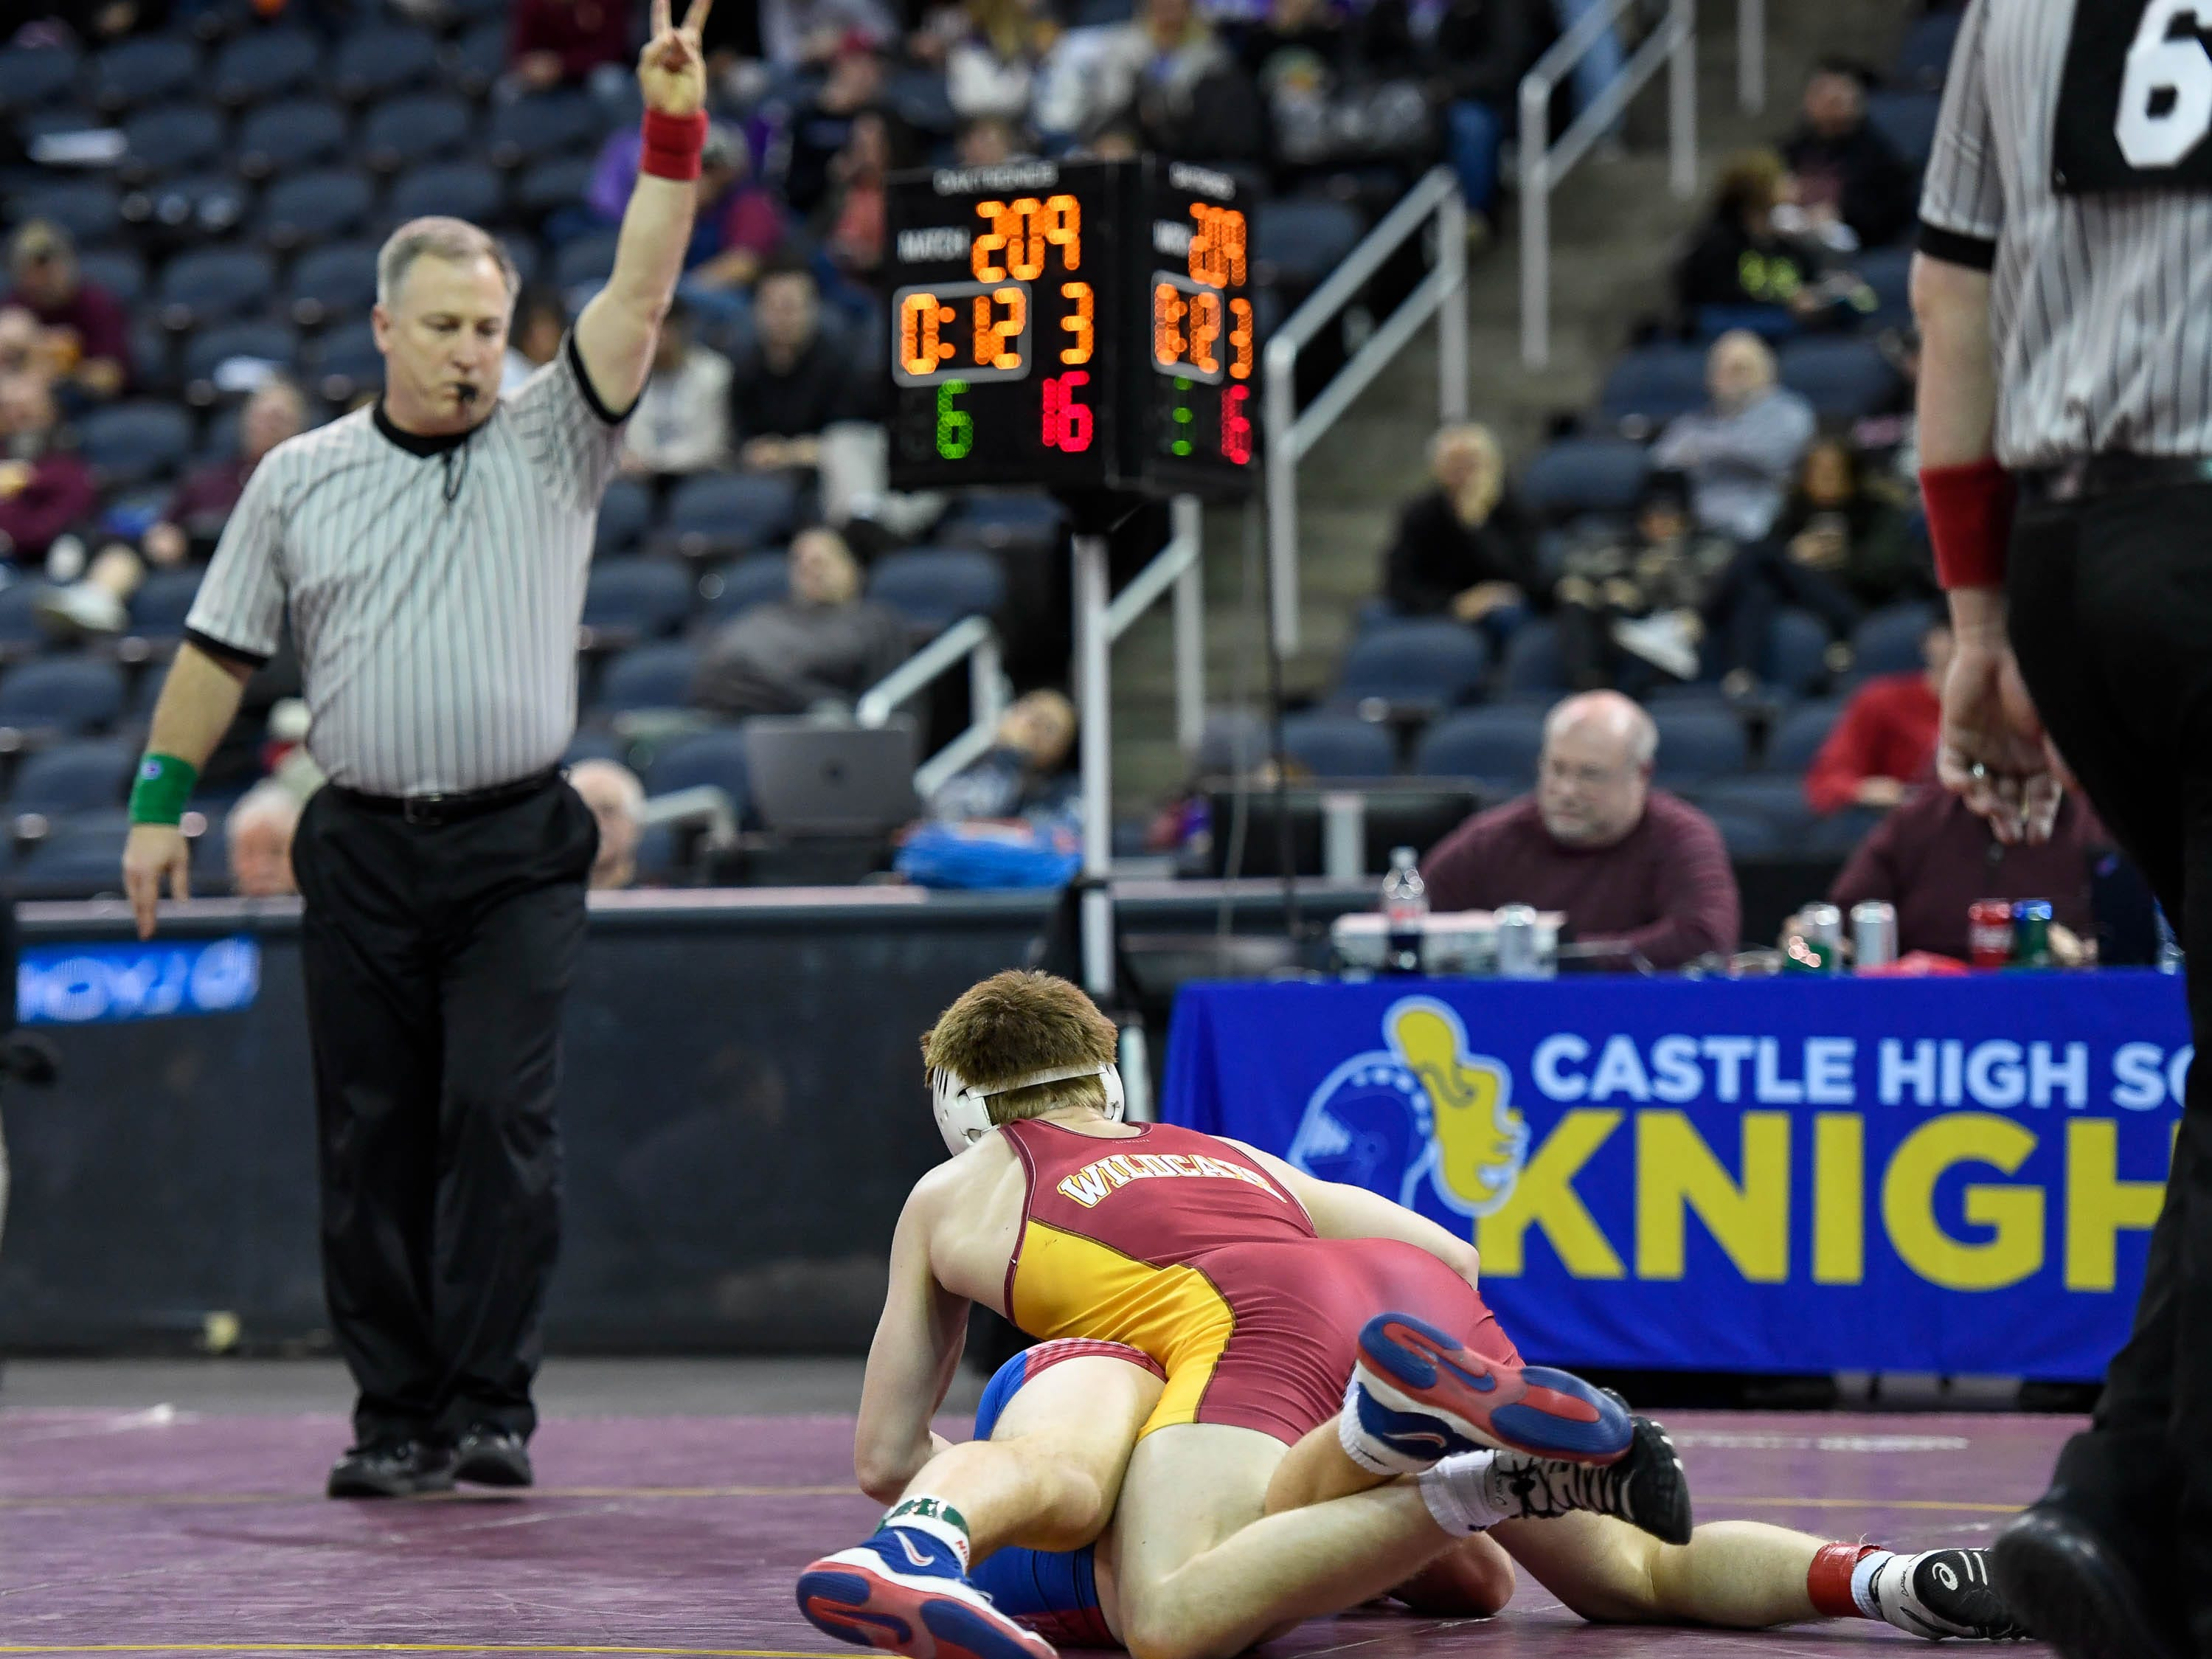 Mater Dei's Matthew Lee scores points as he wrestles L.J. Burdon, Plainfield, in the 145 weight class of the finals of the Indiana High School Athletic Association Semi-State Wrestling Tournament held at the Ford Center Saturday, February 9, 2019.